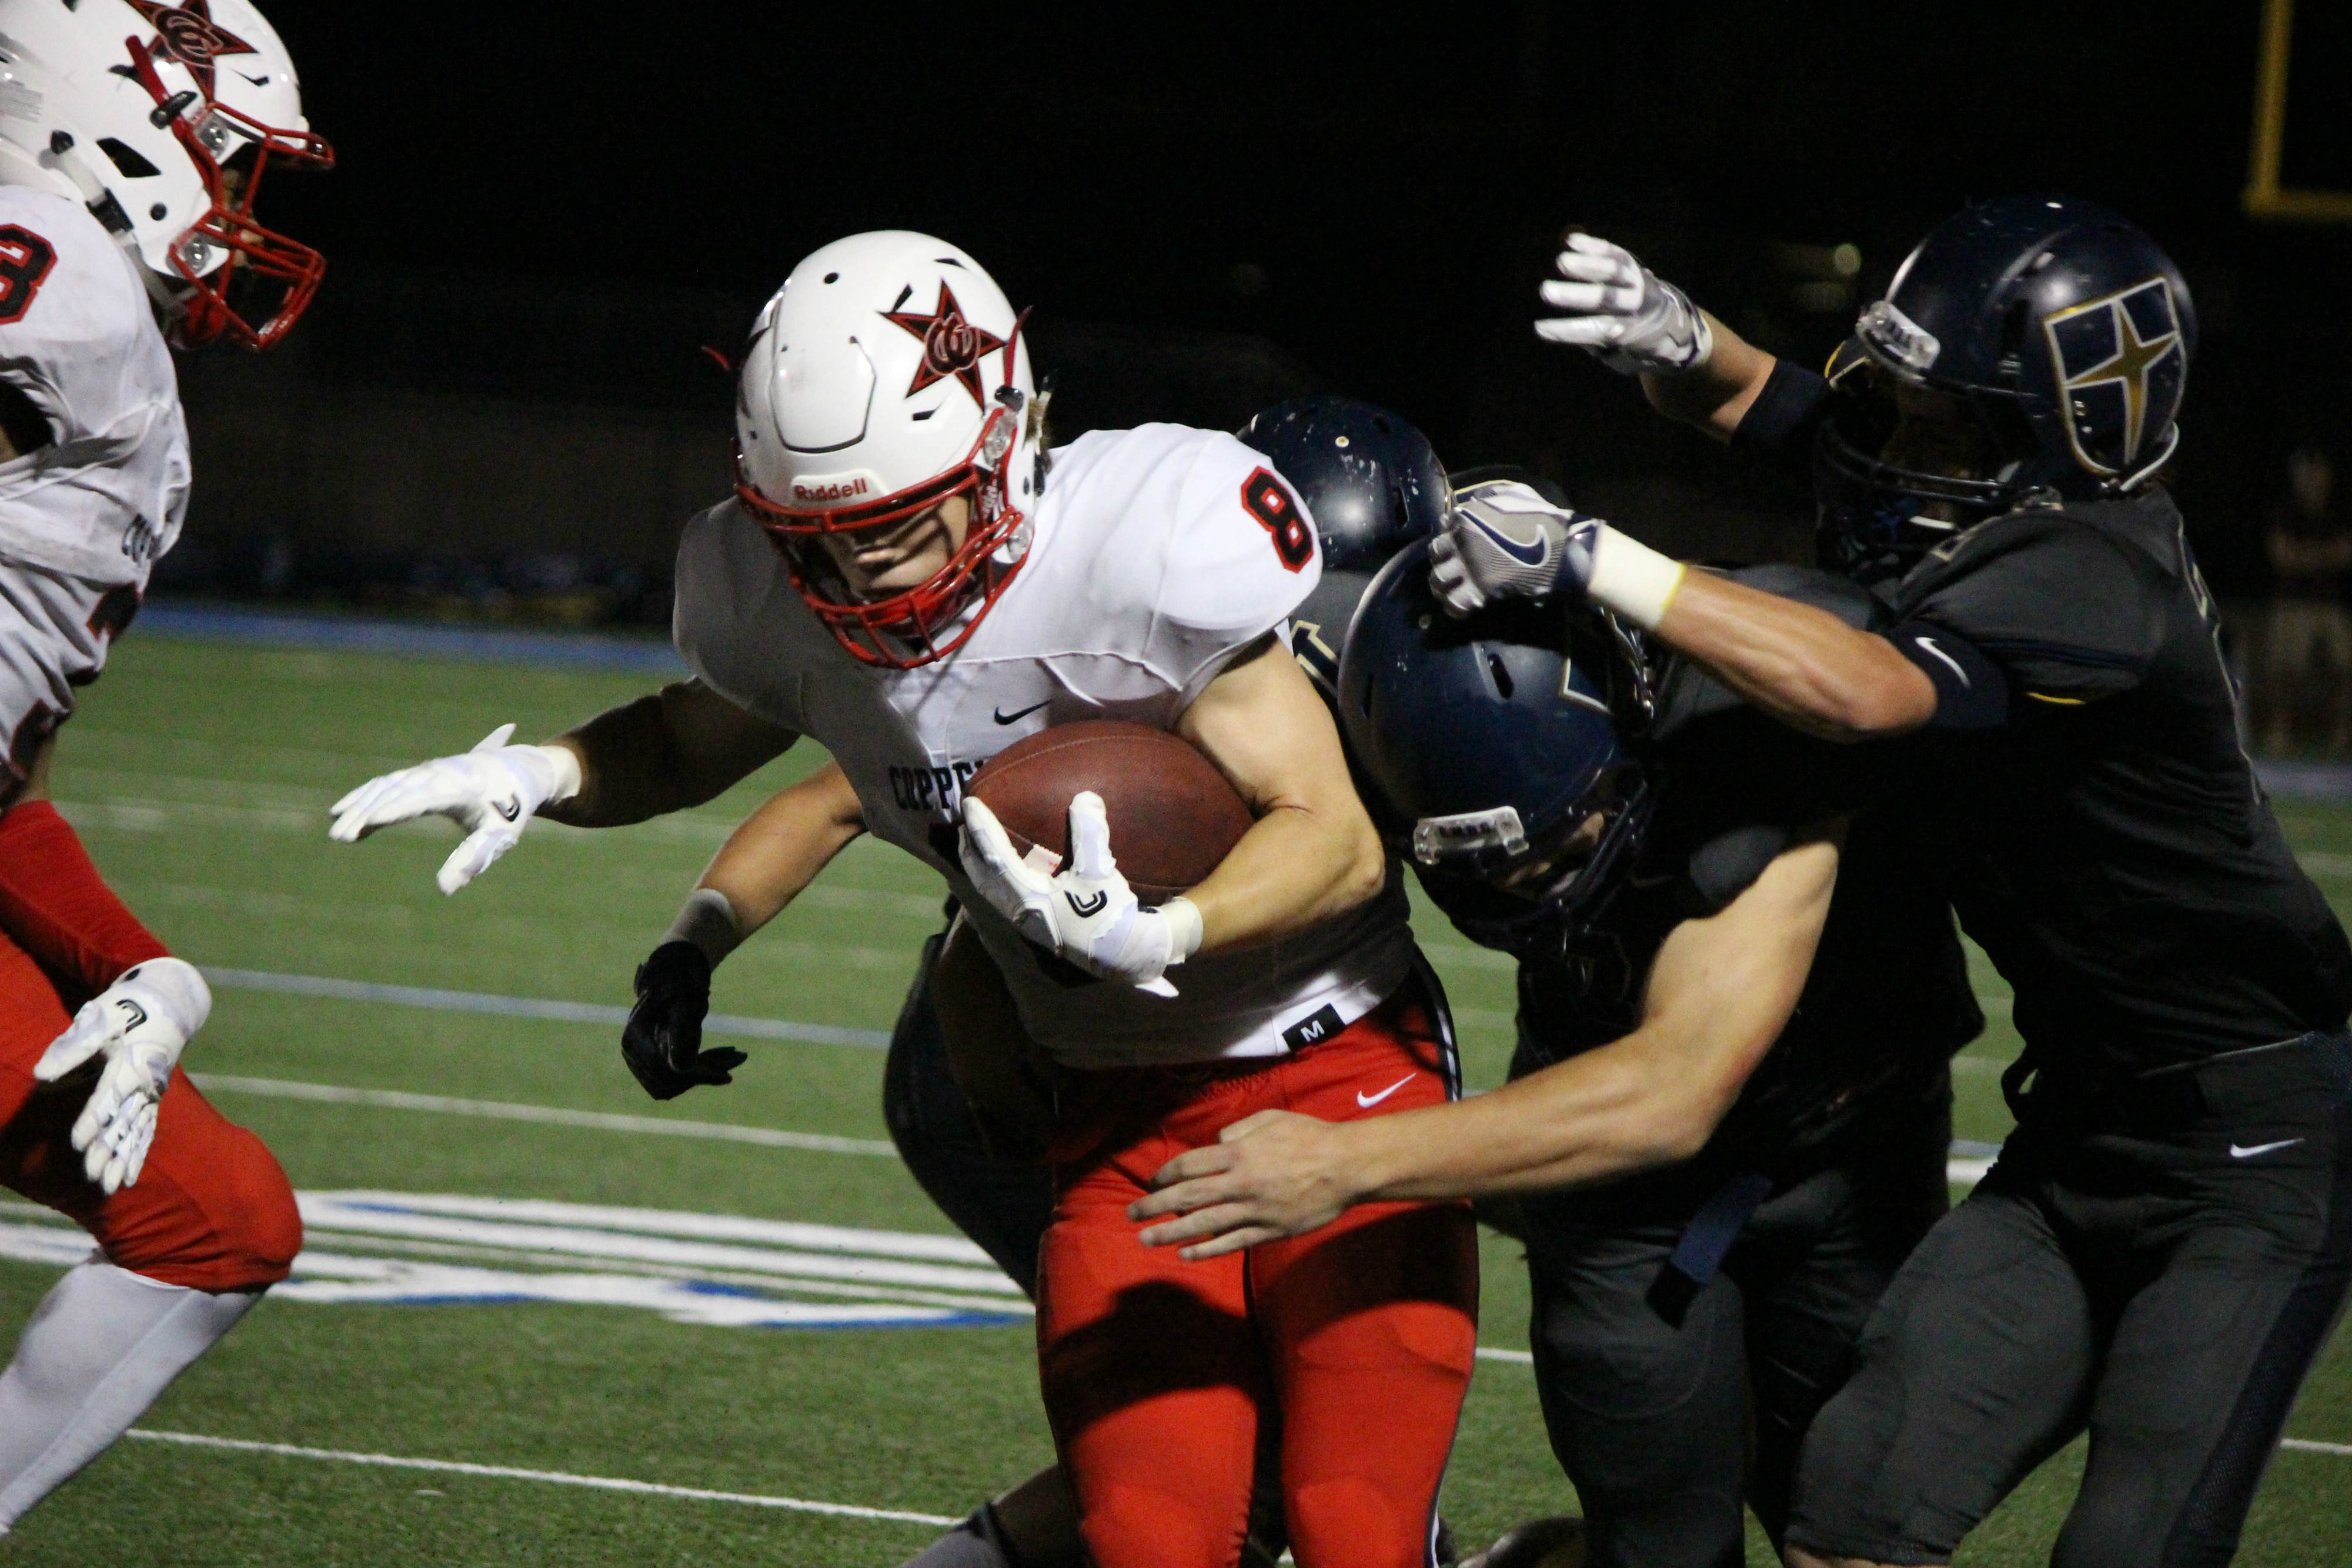 Sophomore wide receiver Blake Jackson is taken down by several Jesuit defenders in the Cowboys 41-10 loss at Jesuit on Friday. Jackson finished with six receptions for 72 yards in the loss.